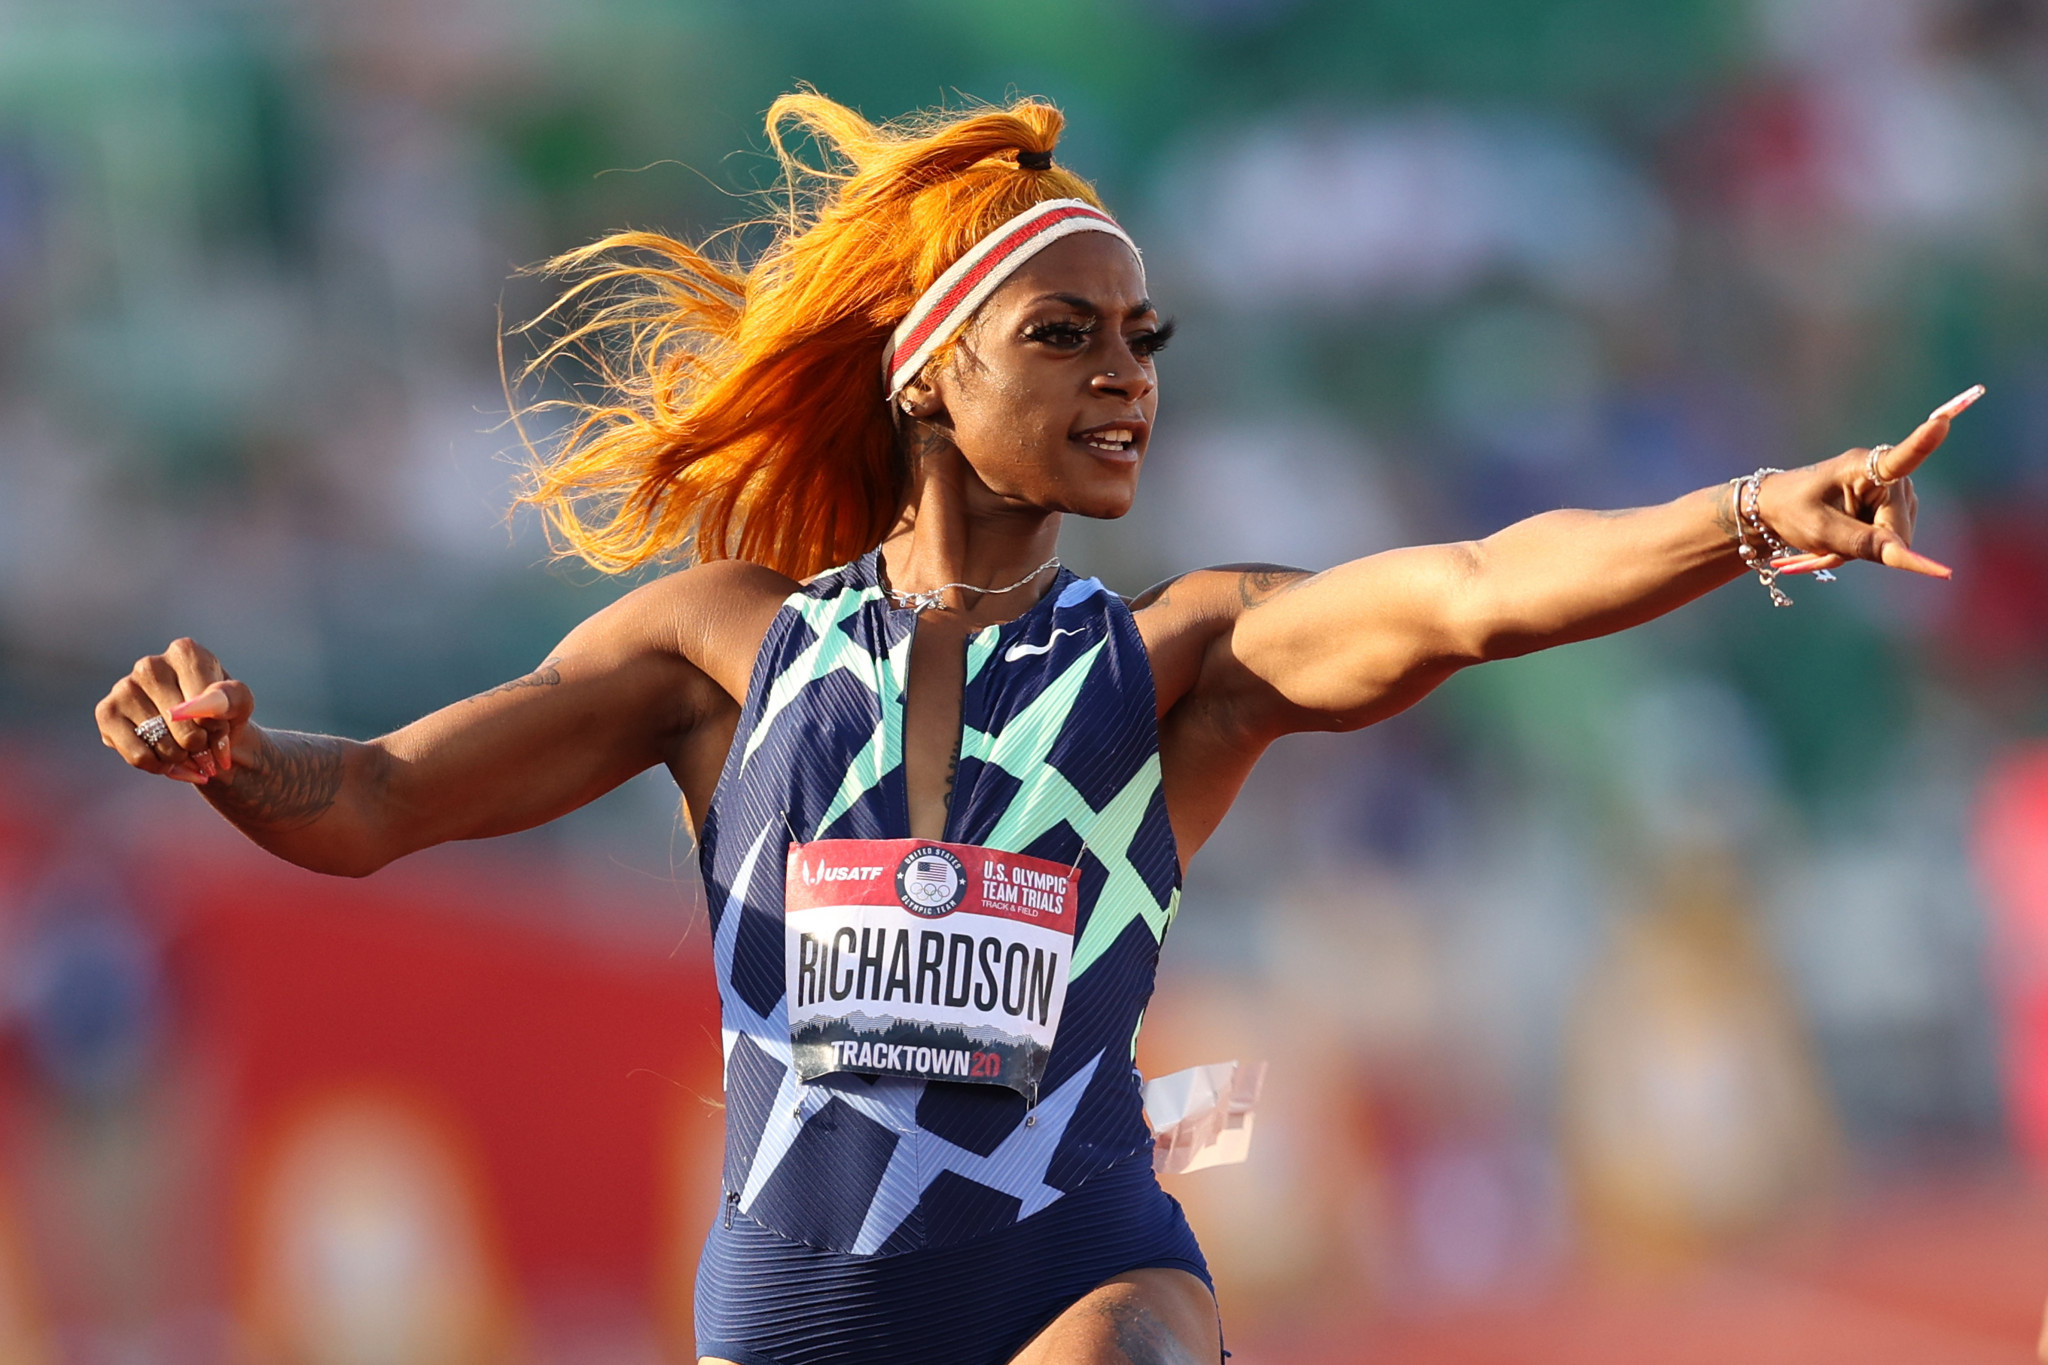 Richardson to return from ban at Prefontaine Classic in star-studded women's 100m field